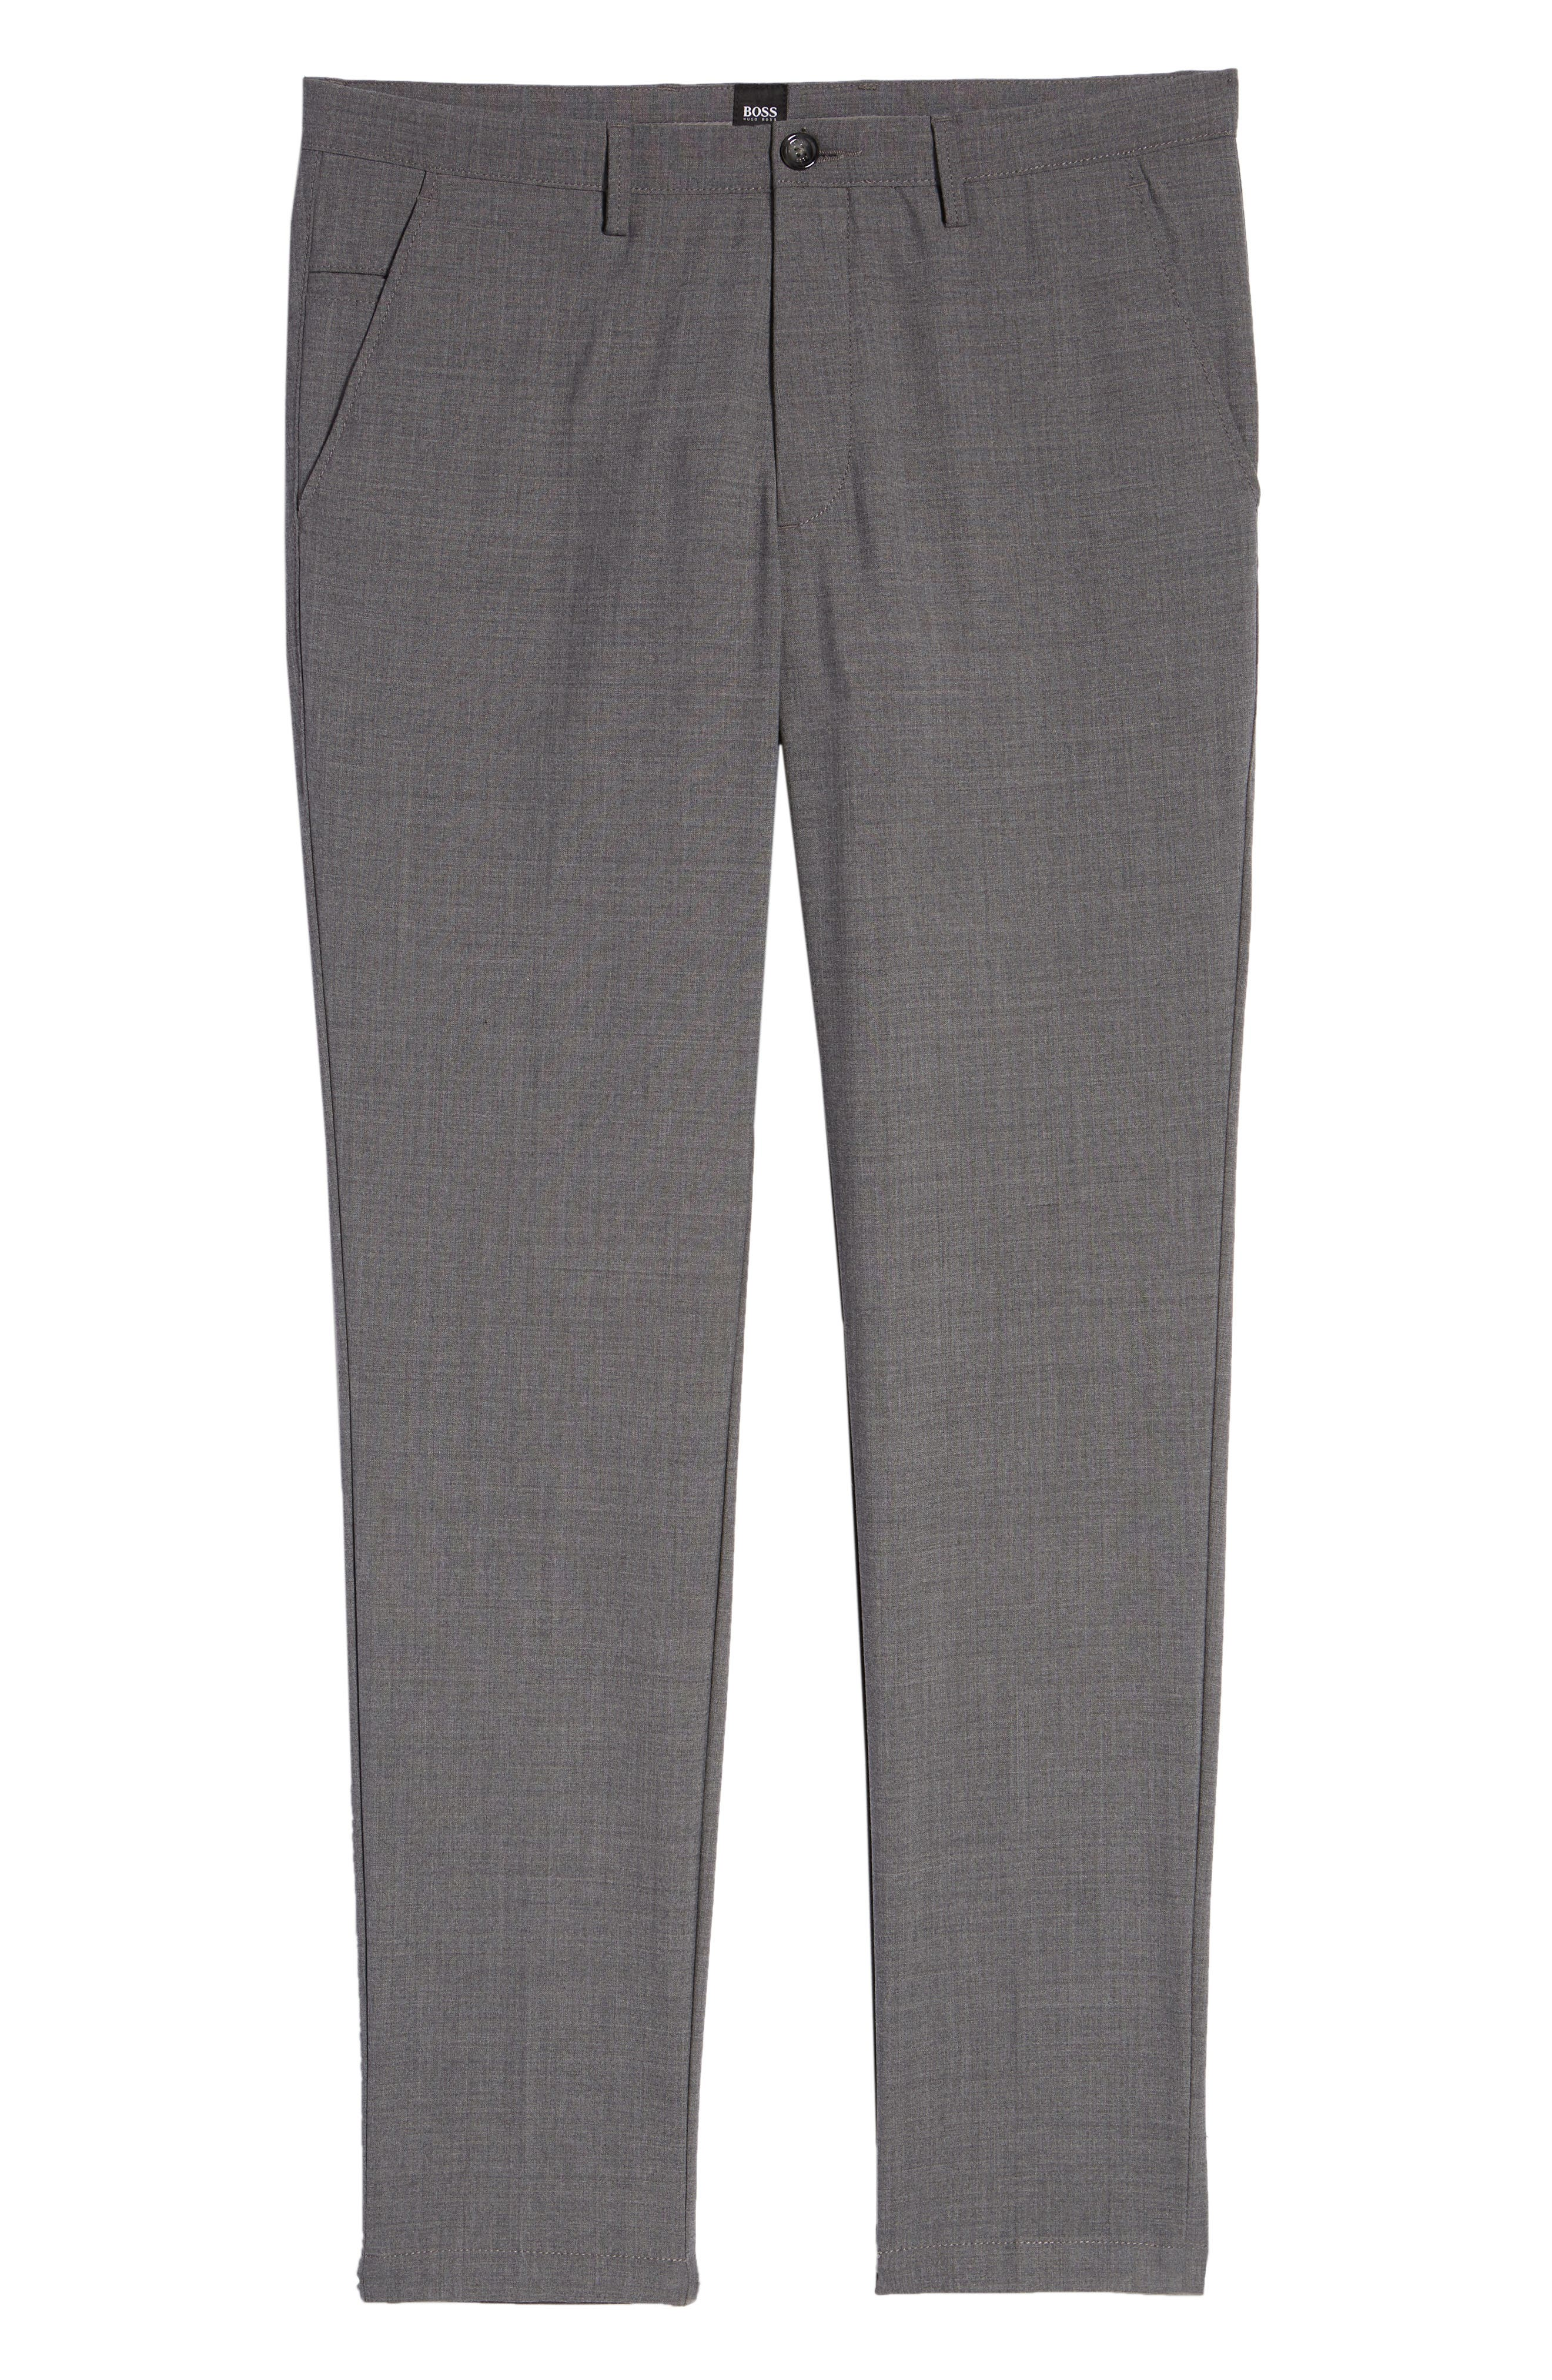 Kaito Slim Fit Wool Trousers,                             Alternate thumbnail 6, color,                             GREY